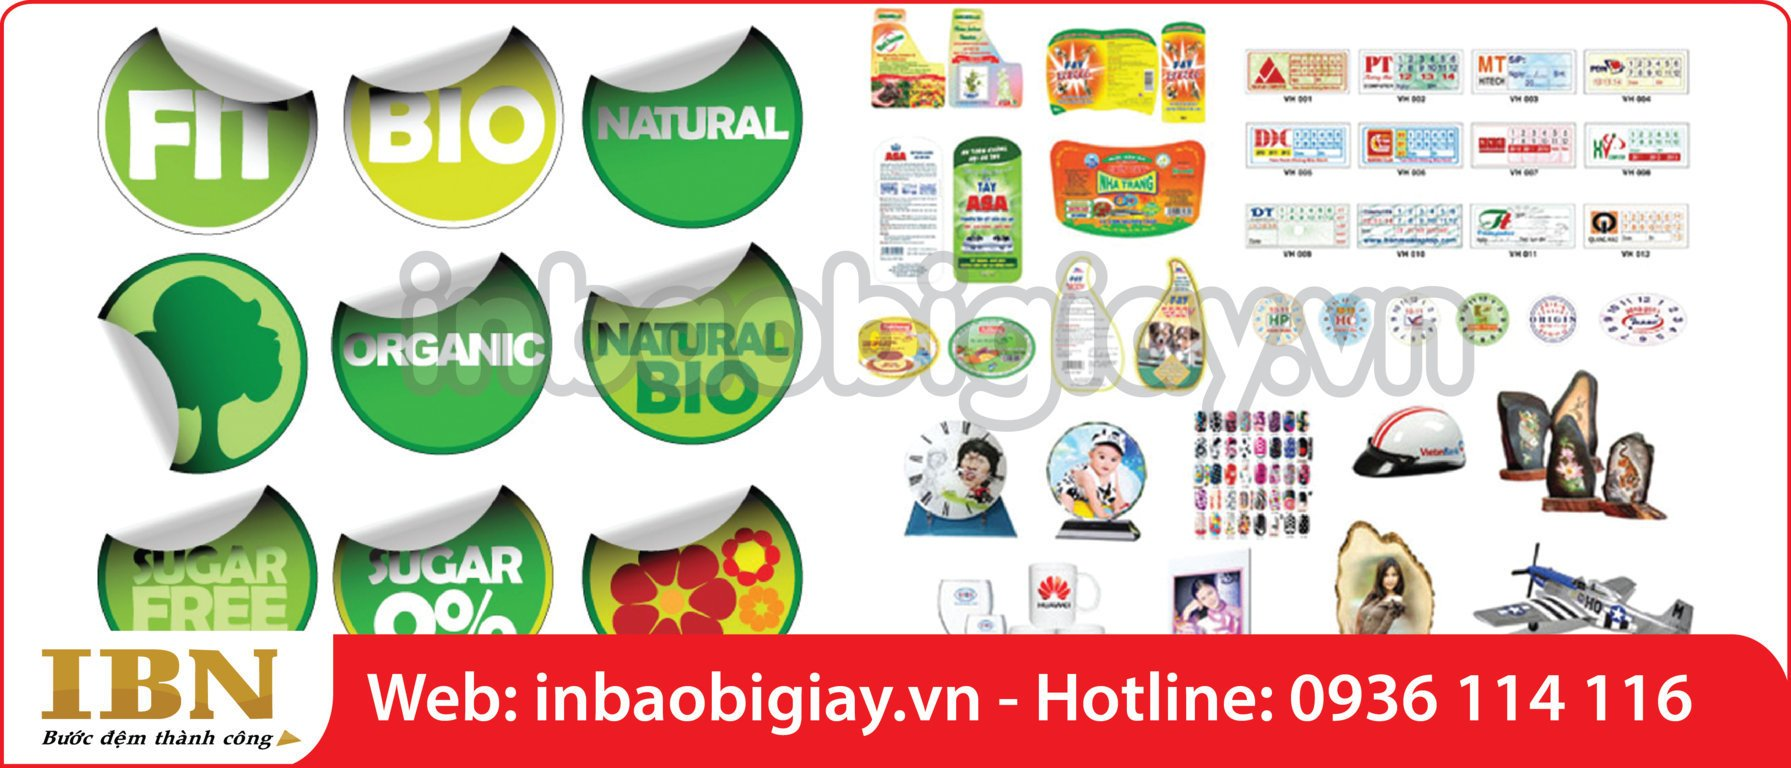 in decal cao cấp